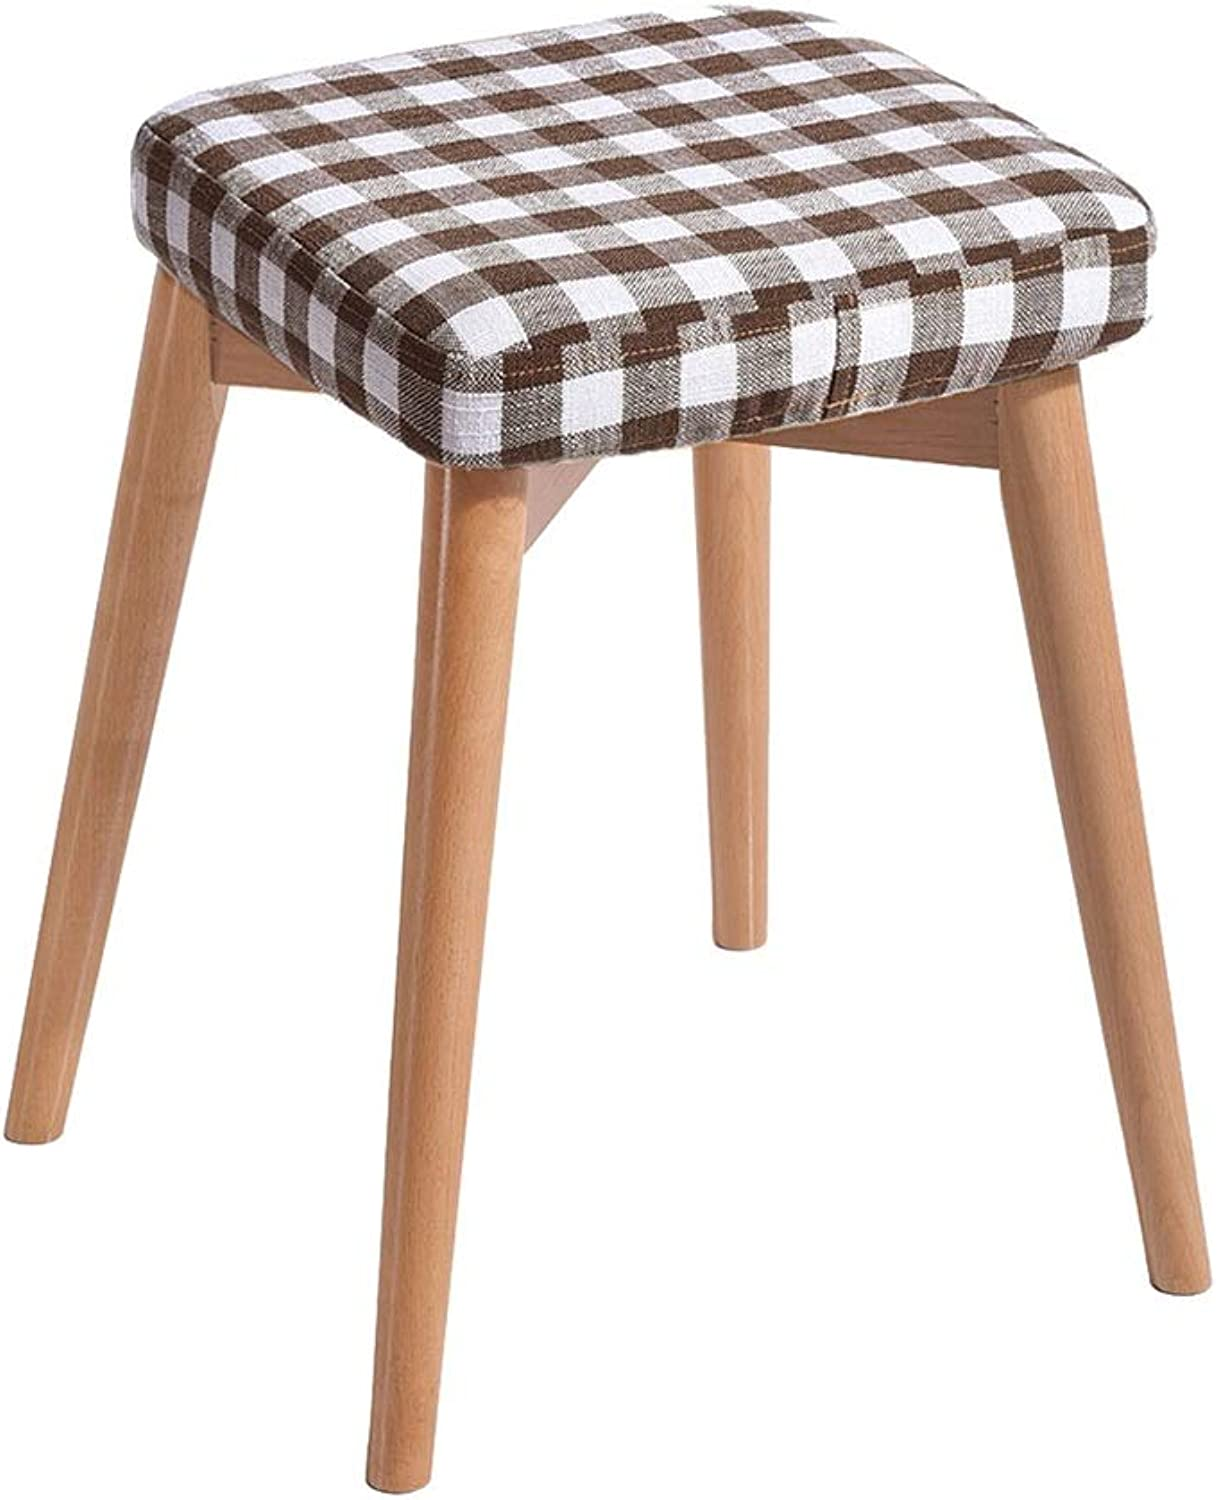 Creative Fashion Bench Nordic Upholstered Stool Household Solid Wood Dressing Stool Chair for Kitchen Living Room Bathroom High Resilience Sponges Seat Height 75 cm - Lattice Style